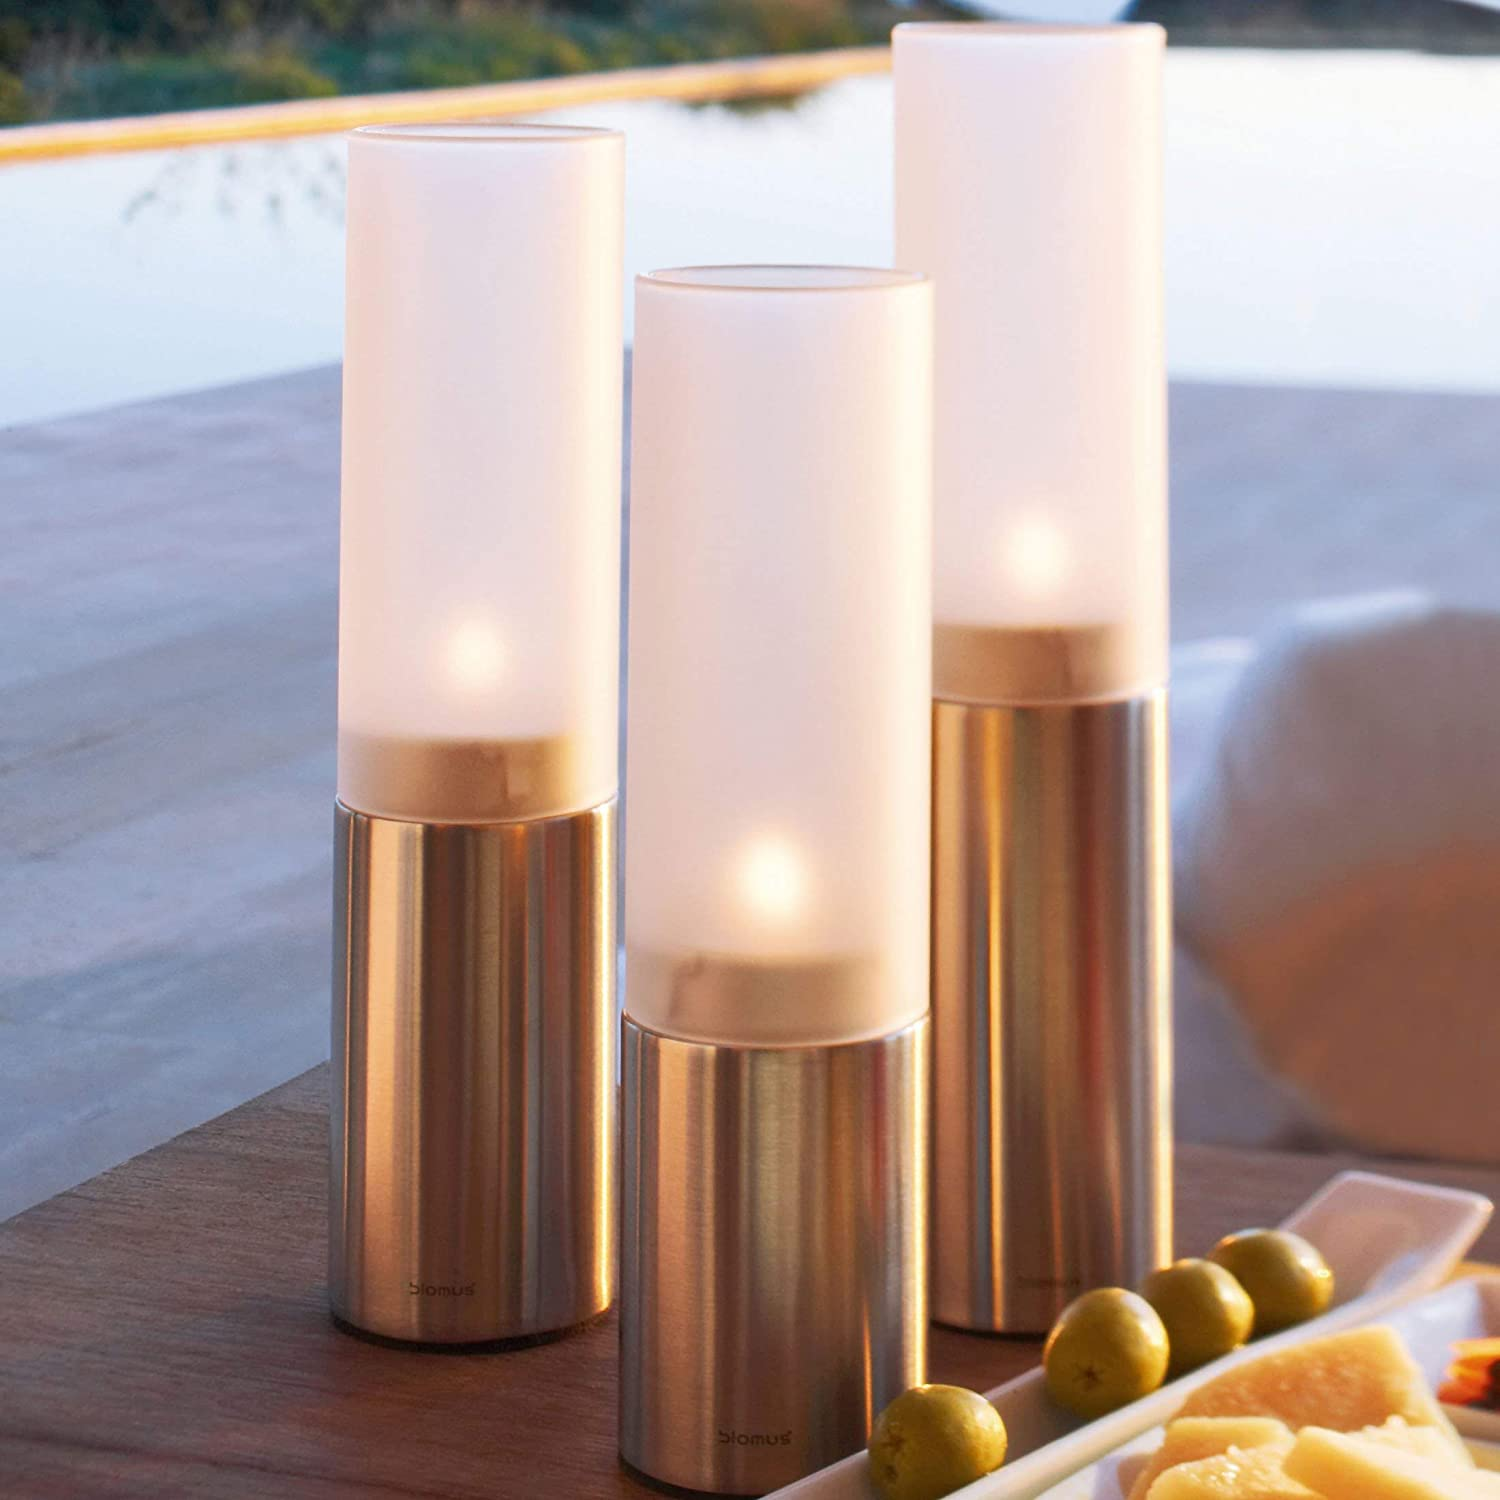 FARO stainless steel tea light holders from BLOMUS.Set of 3 or individual.